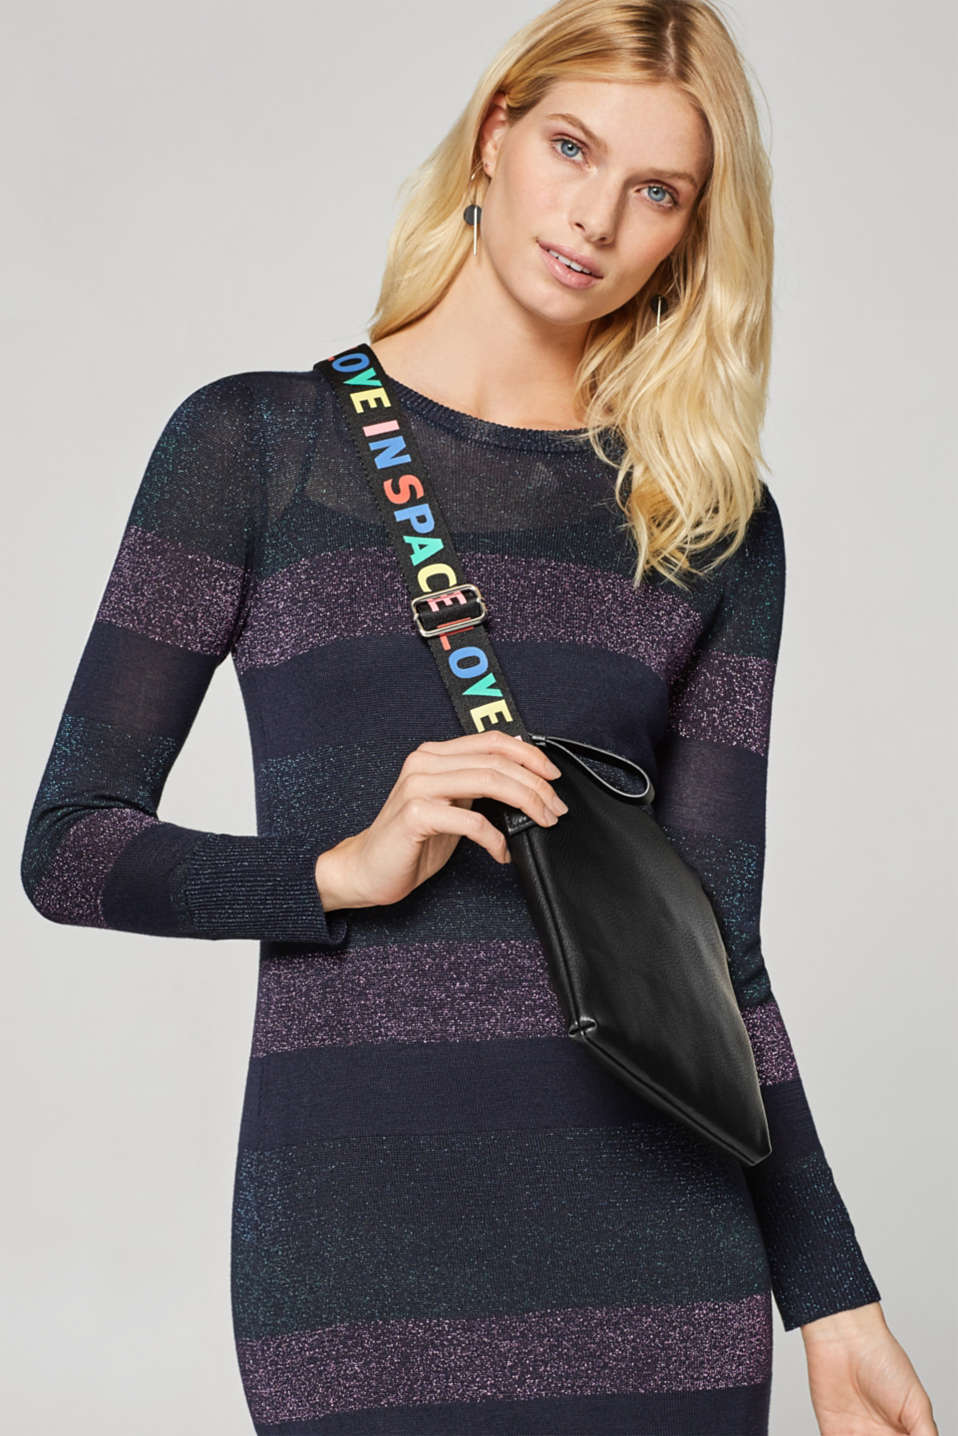 Small shoulder bag with a statement strap